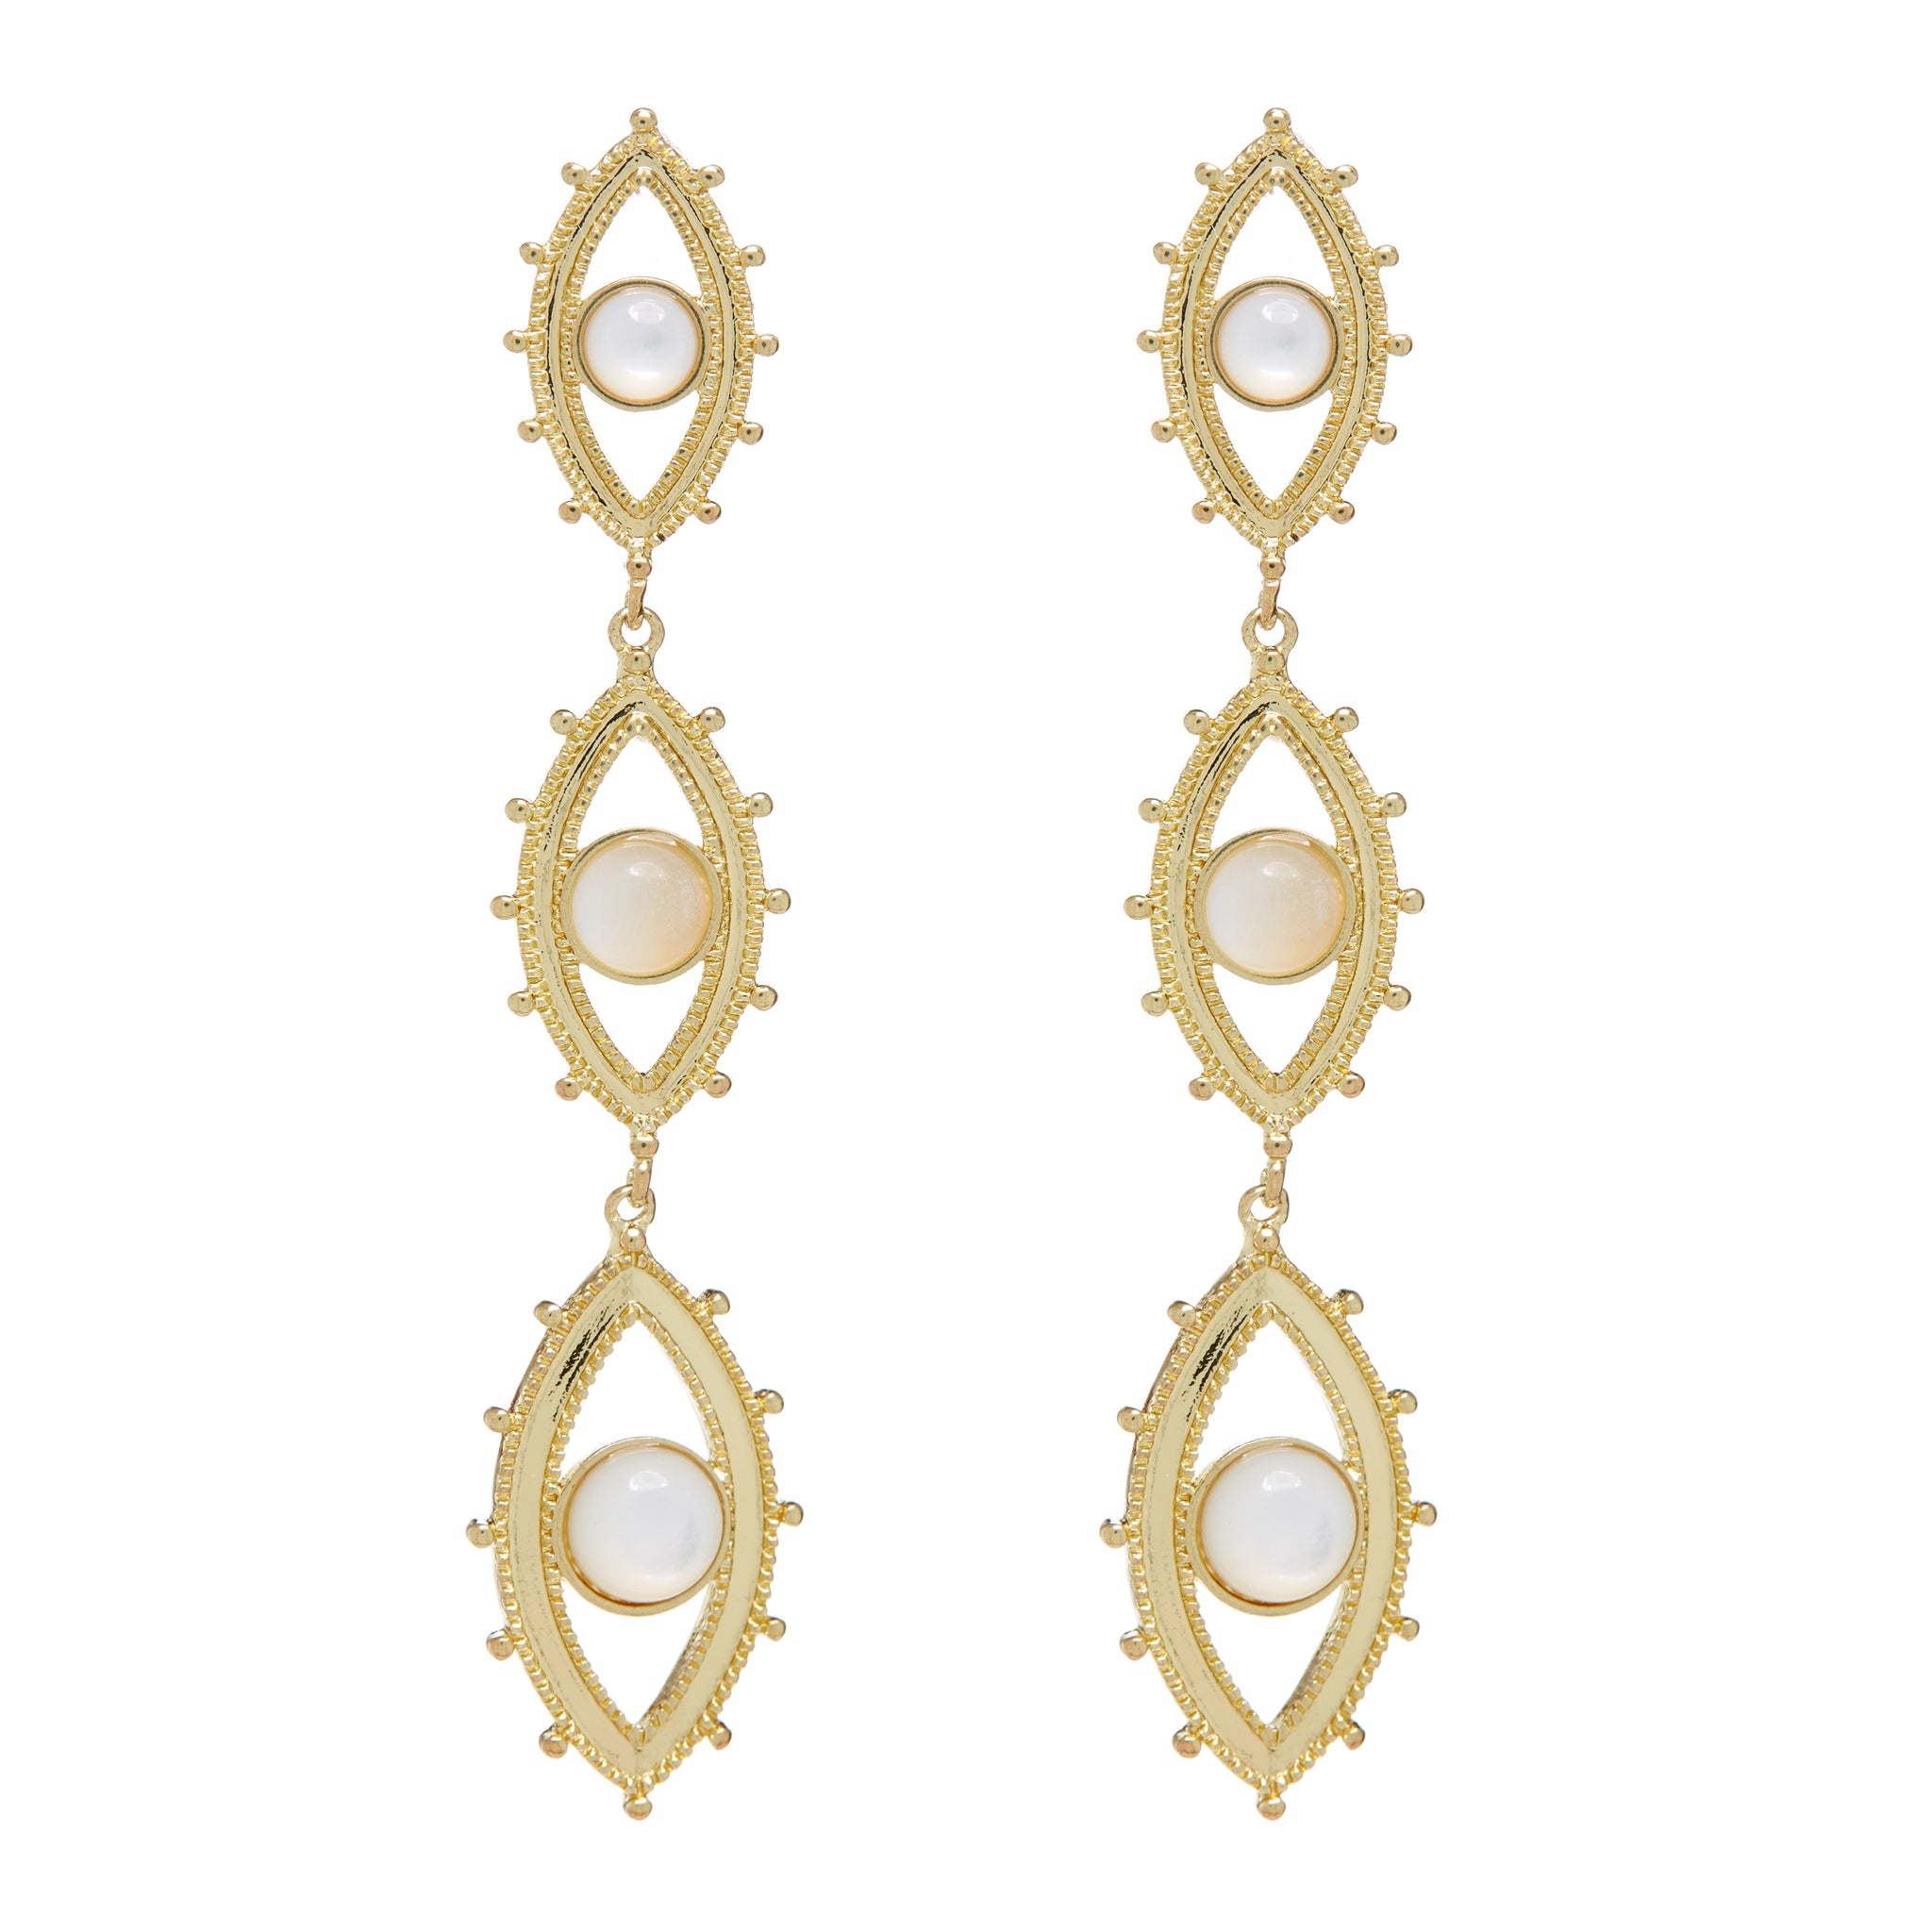 LUV AJ - EVIL EYE DROP EARRINGS